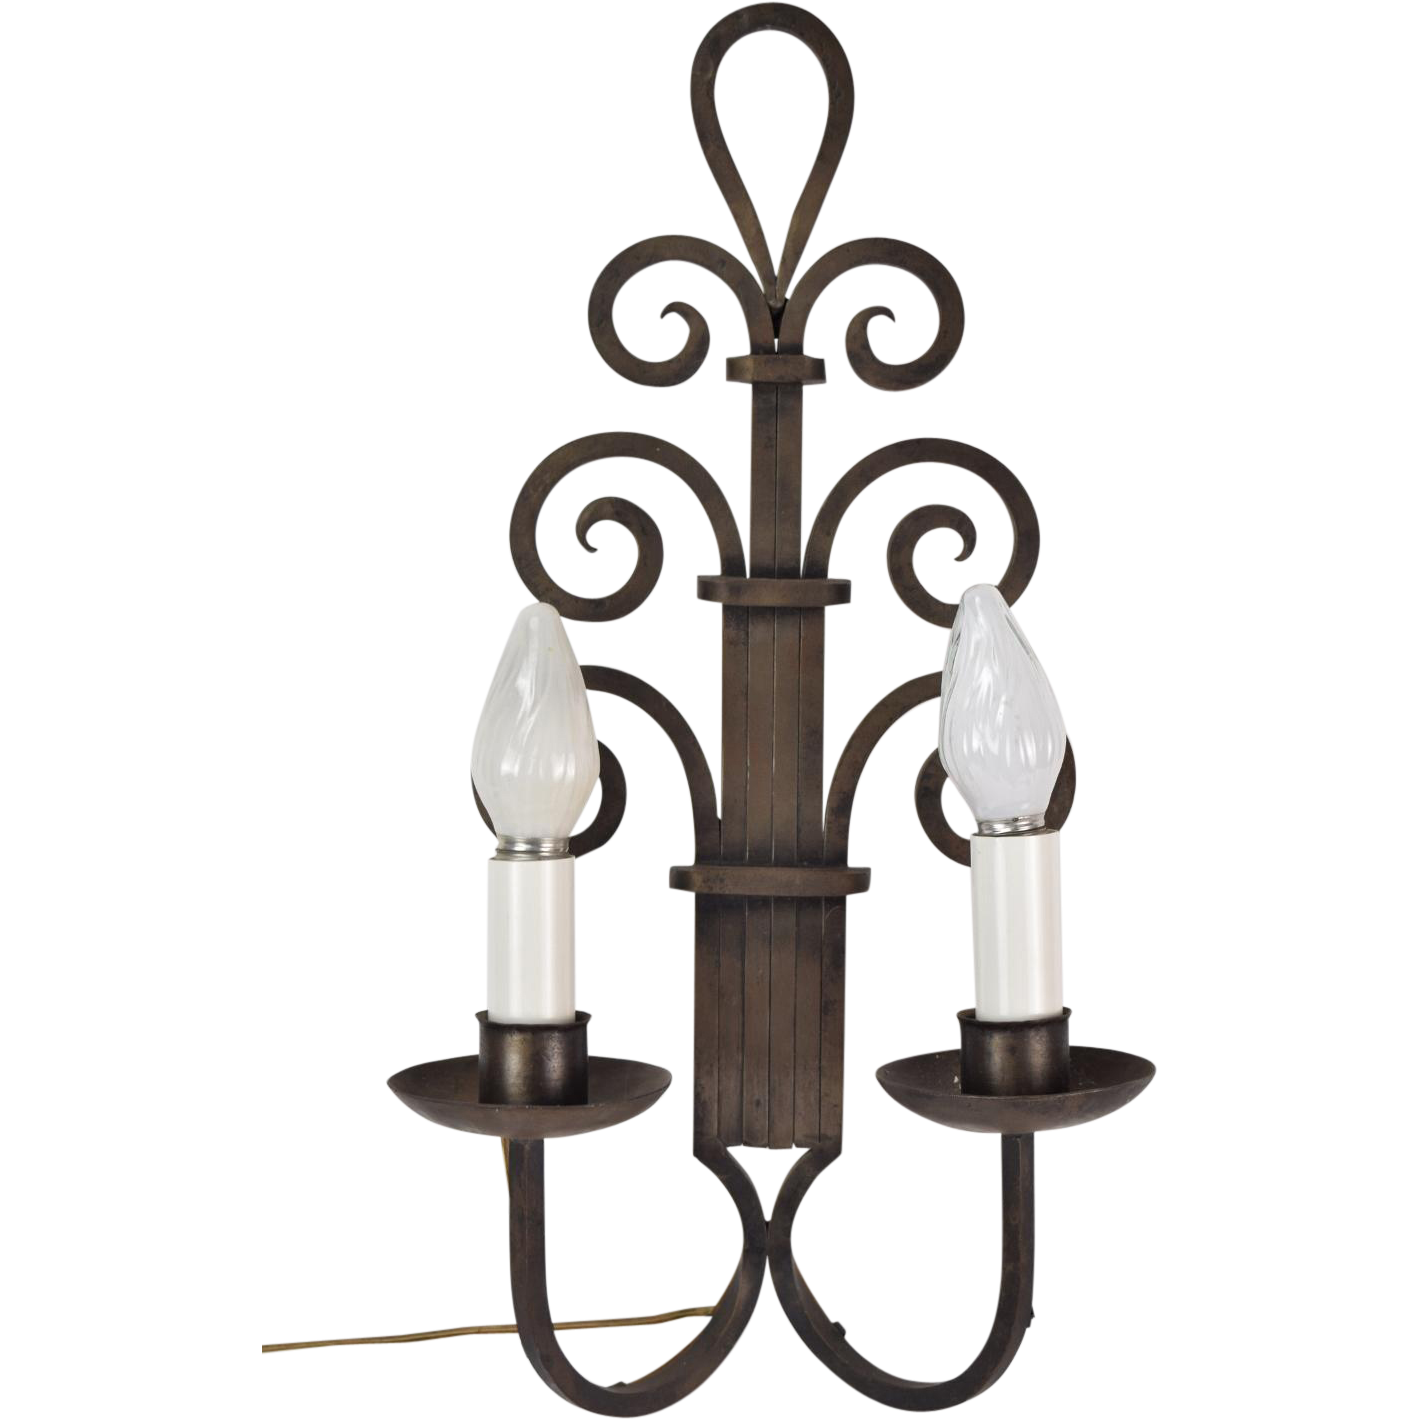 Wrought Iron Sconces Wall Decor : Large 1930s Art Deco Gothic Wrought Iron Scroll Wall Sconce Light from colinreedantiques on Ruby ...